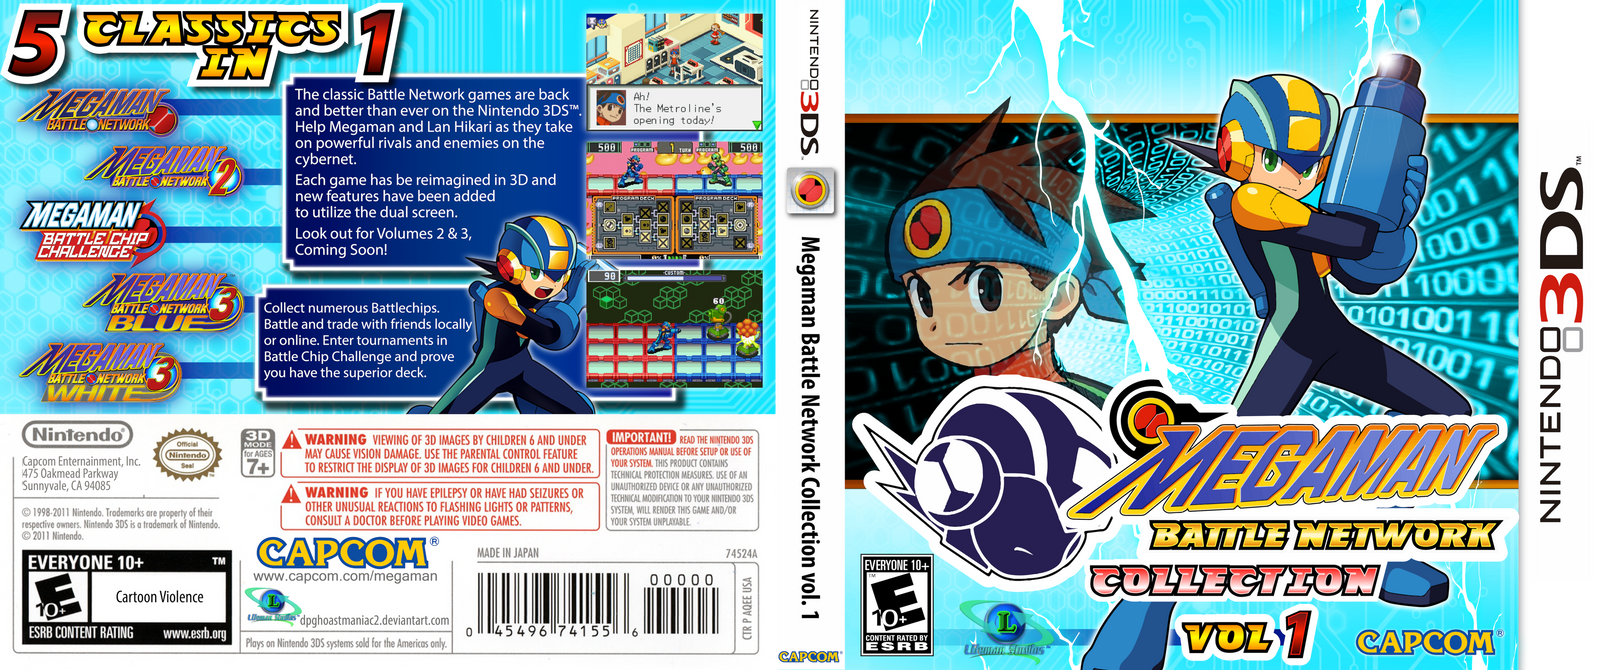 Boxart: Megaman Battle Network Collection vol. 1 by ShadowLifeman